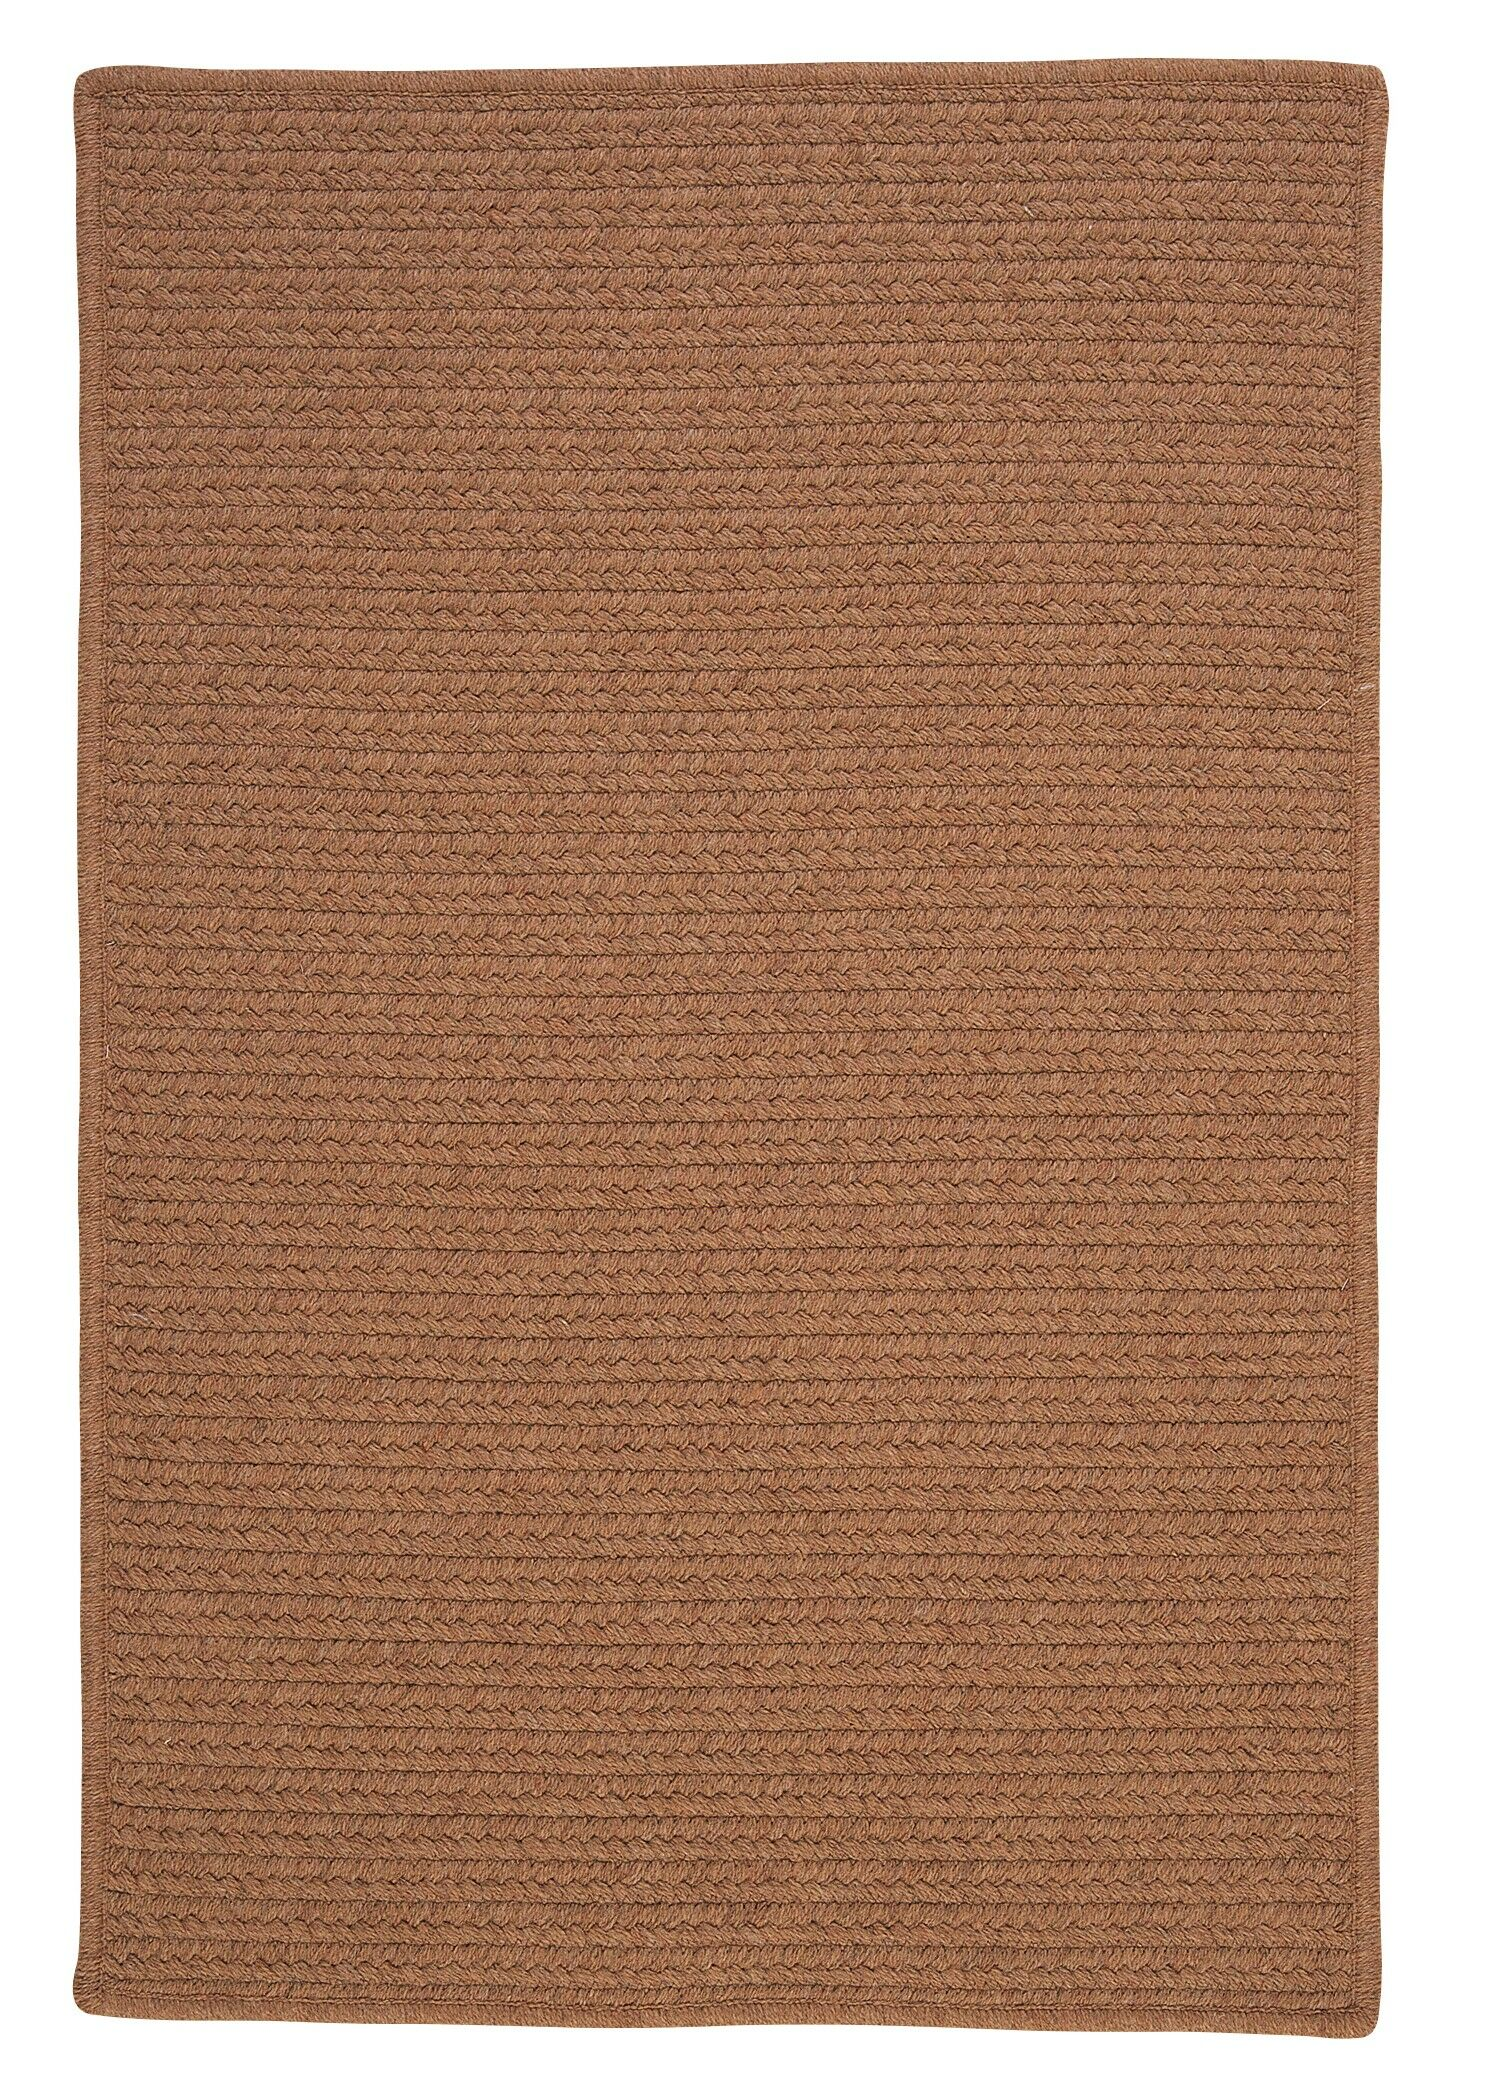 Westminster Taupe Area Rug Fringe: Included, Rug Size: Rectangle 7' x 9'